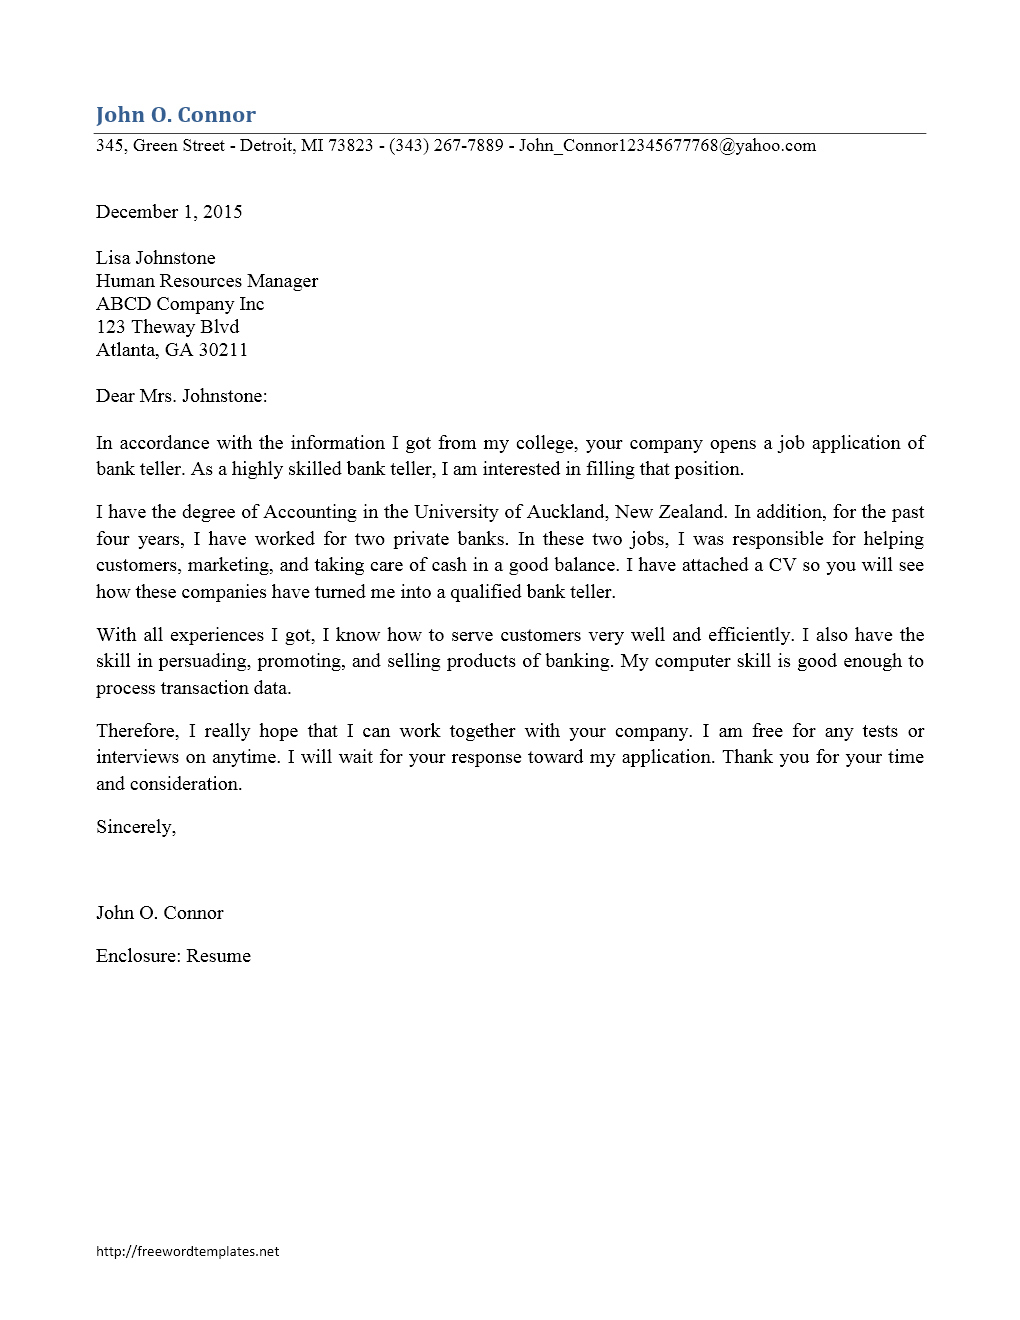 Bank Teller Cover Letter Template No Experience – Kanza In Banking Cover Letter Template